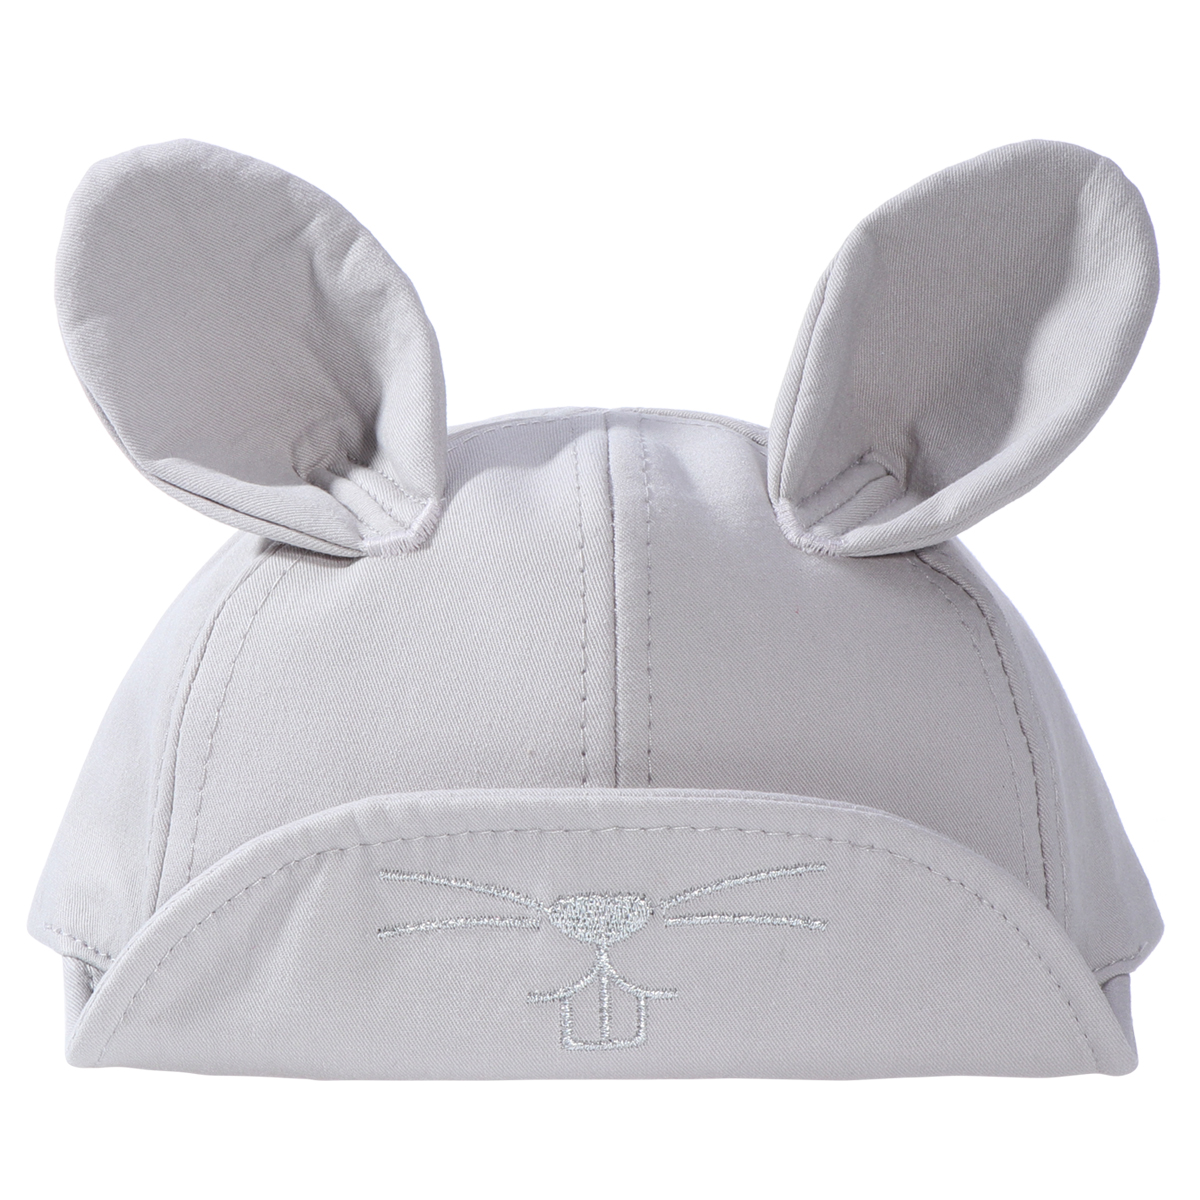 Cap Cute Lovely Childrens Hat with Rabbit Ear Baffi Pattern Embroidered Peaked Cap (Gray)